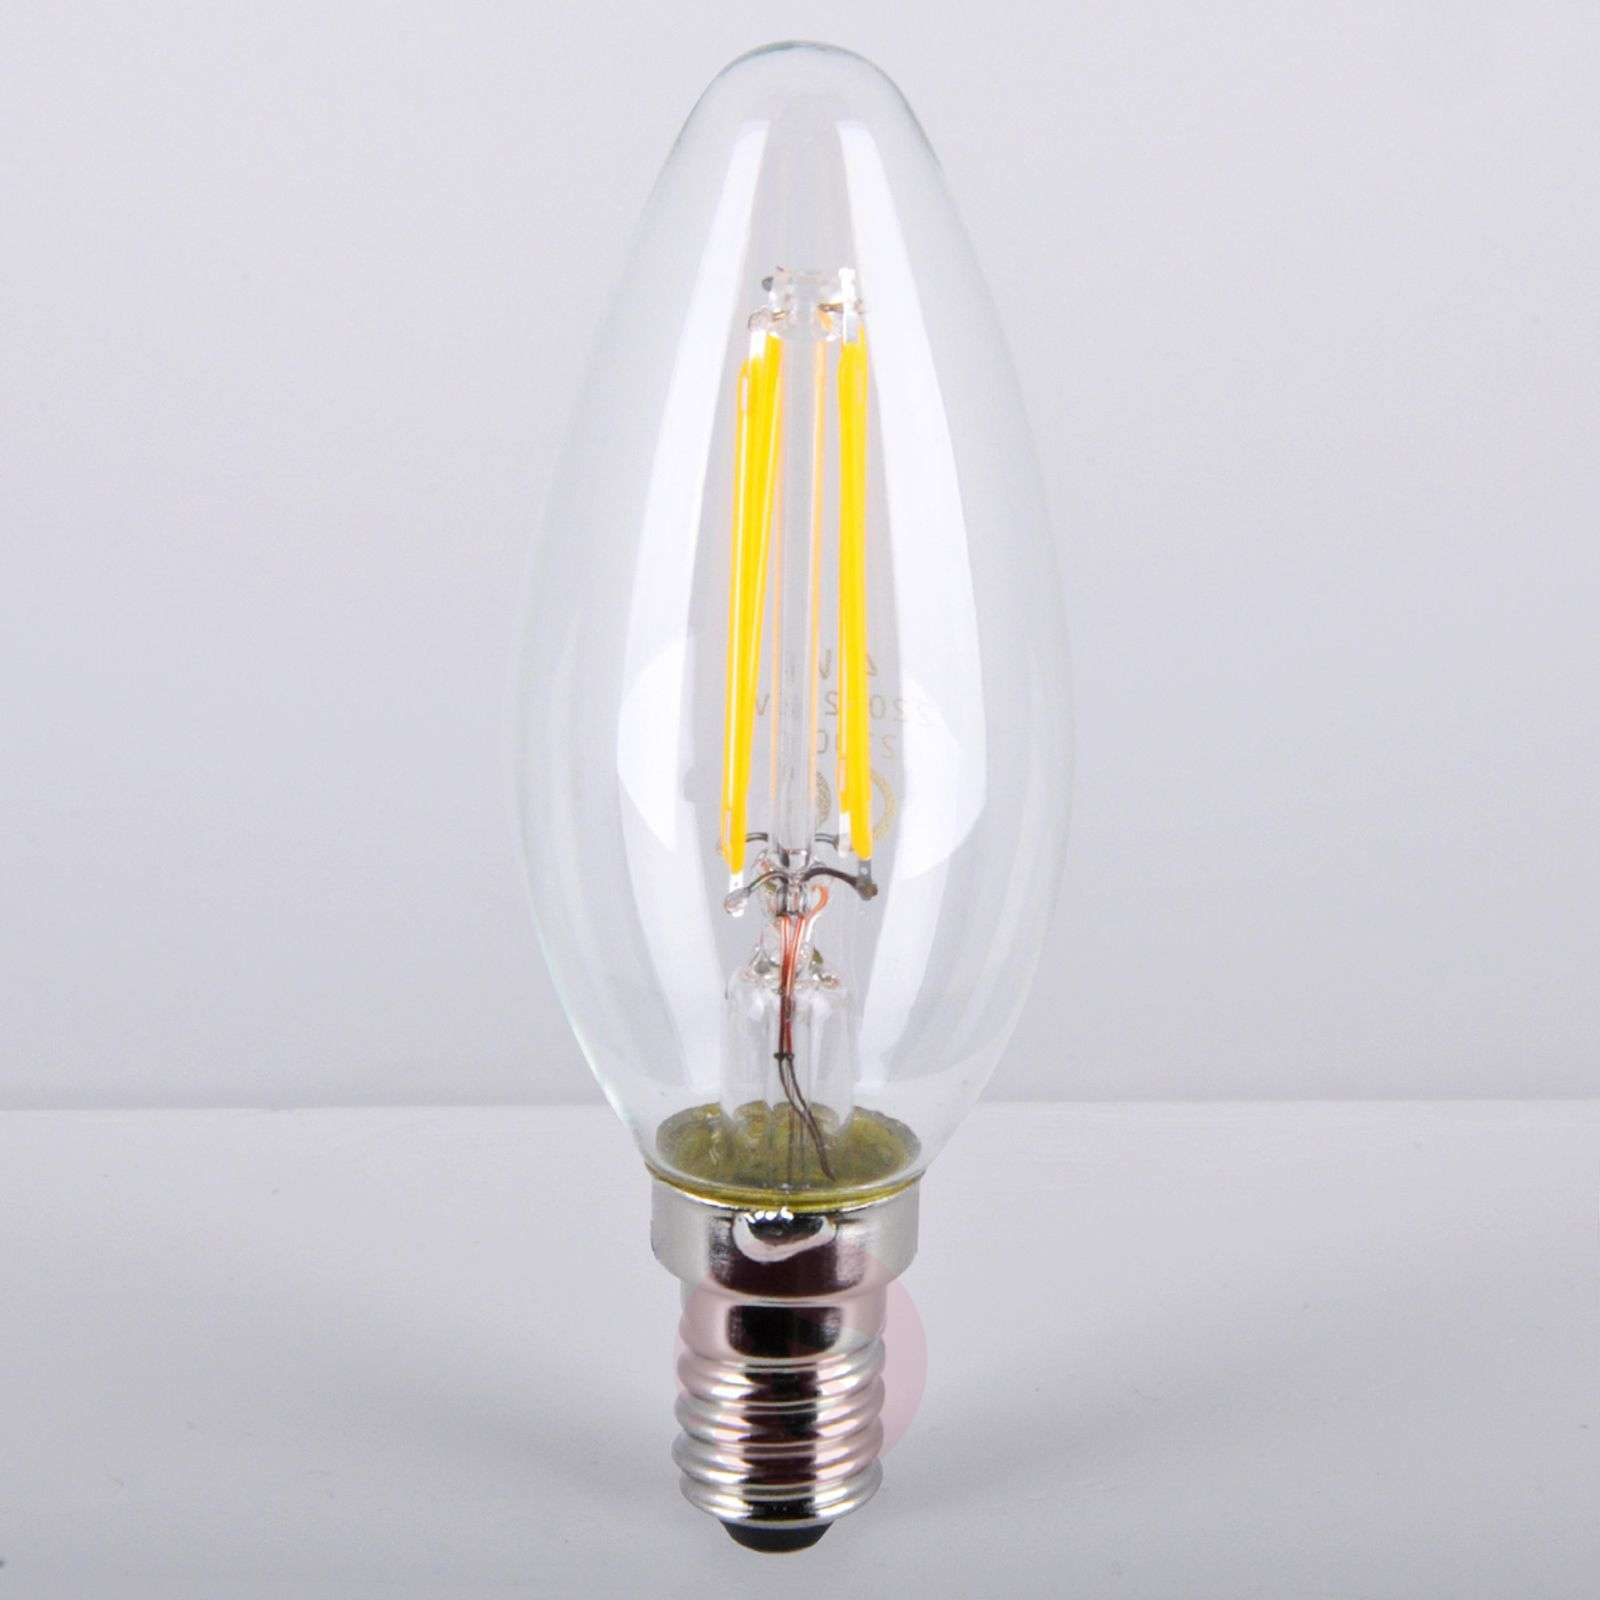 E14 4W 827 LED candle bulb, clear-9945103-01